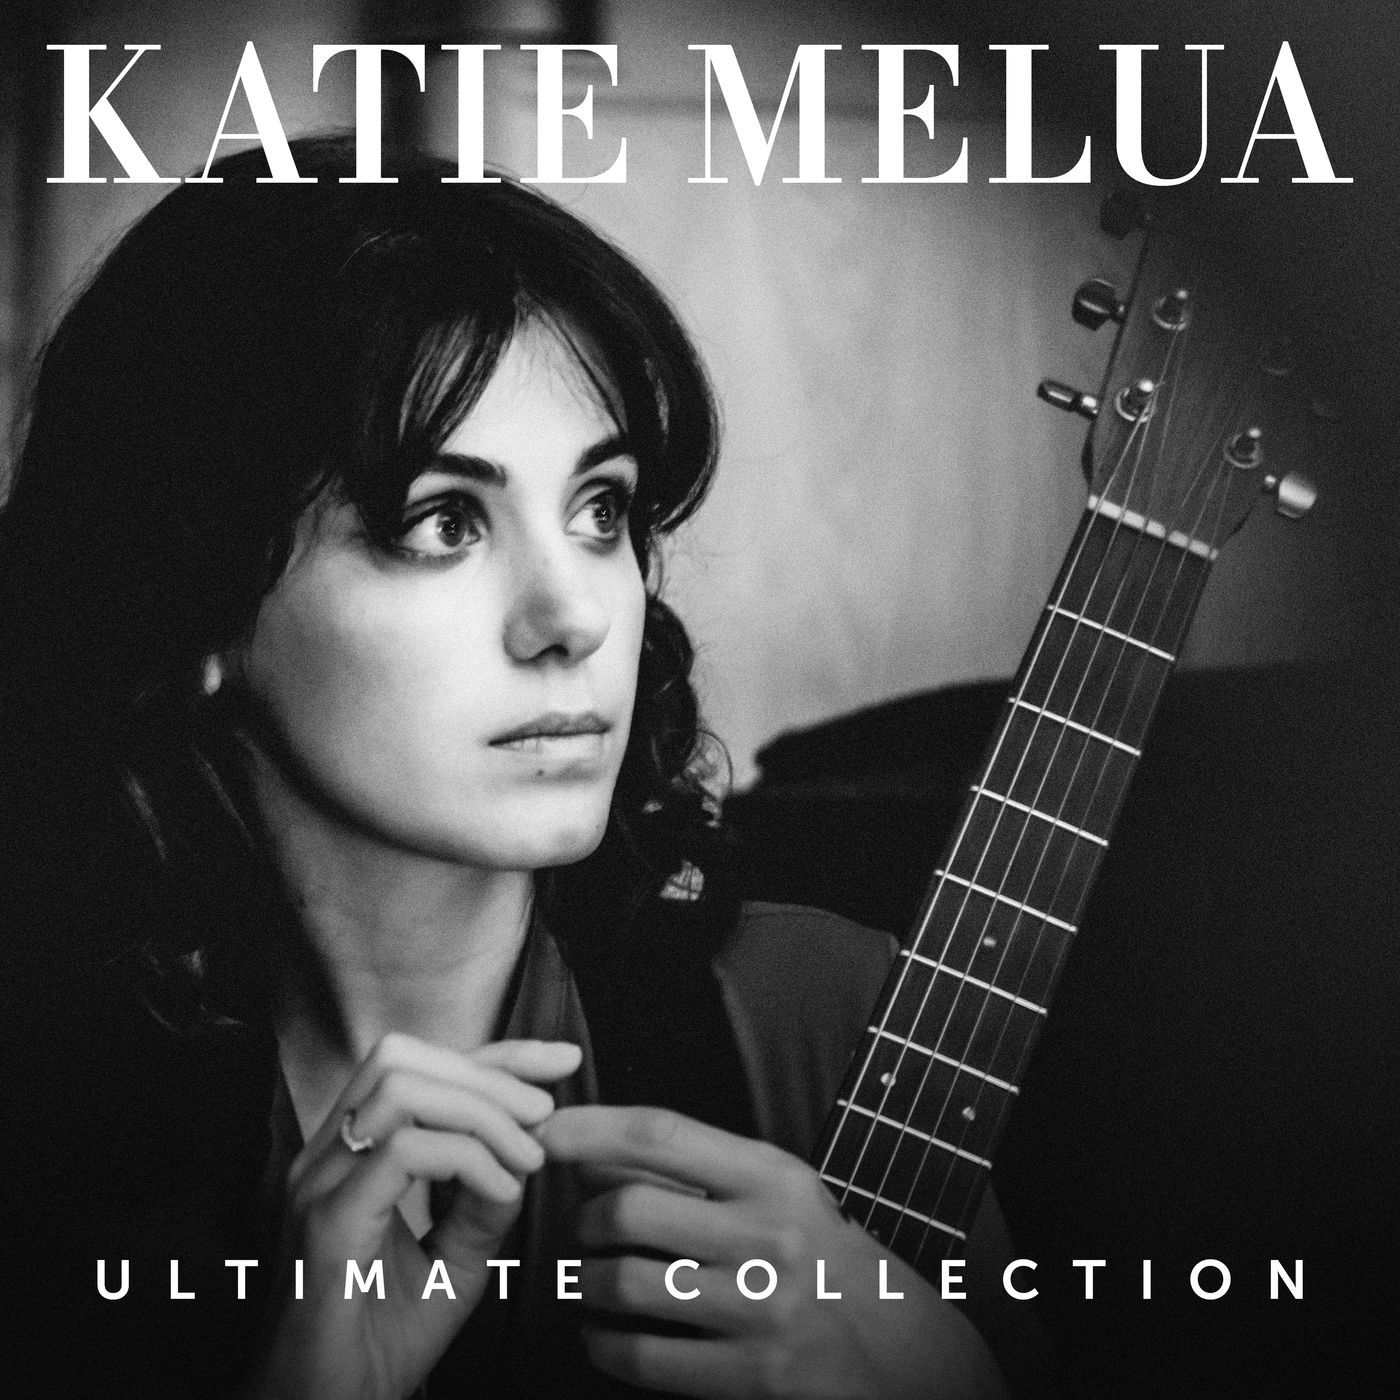 Katie Melua - Ultimate Collection album cover